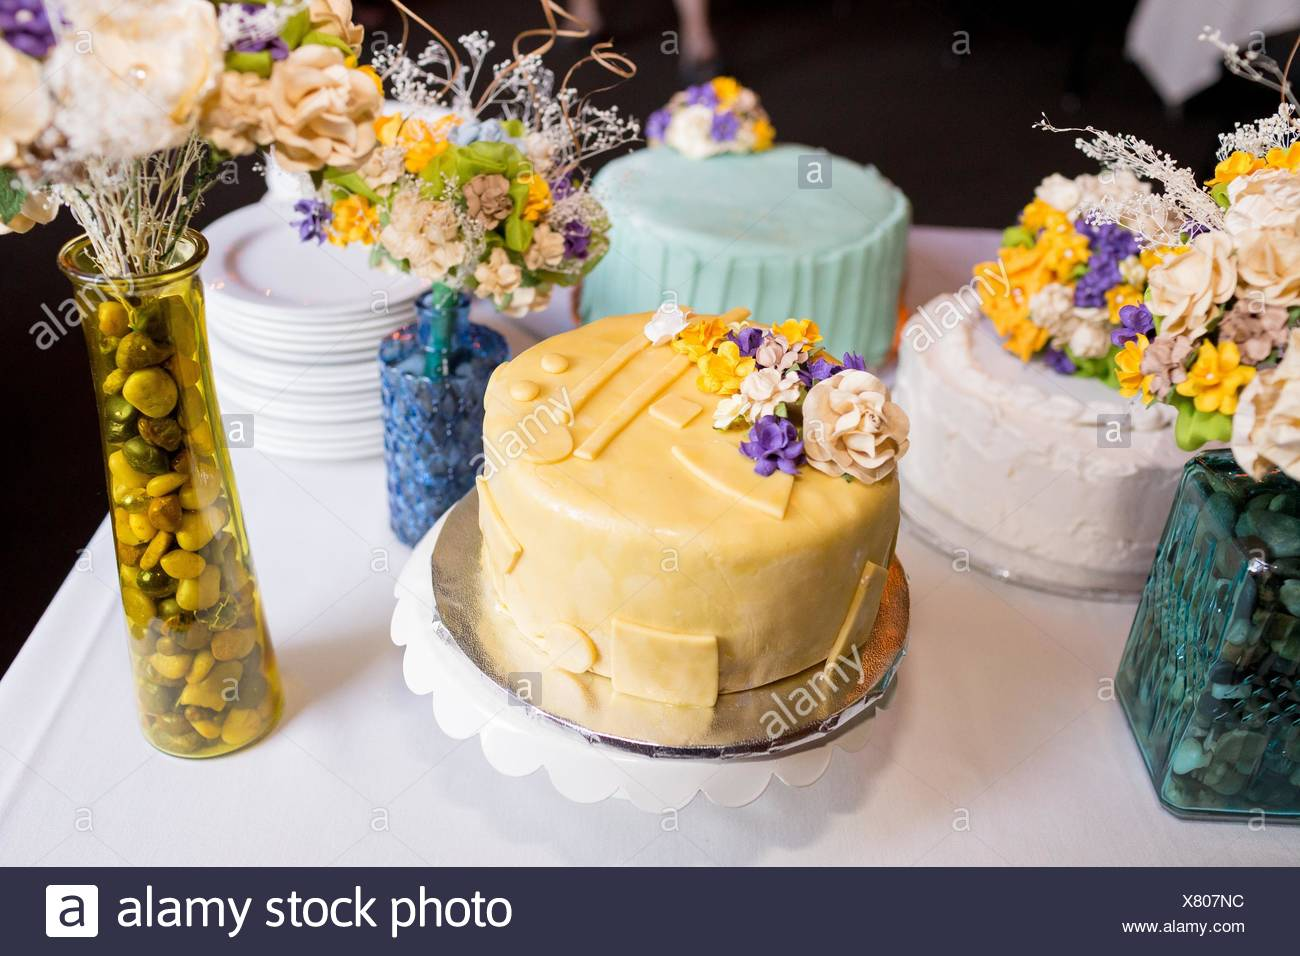 Whimsical wedding cake at a unique reception in Oregon. - Stock Image